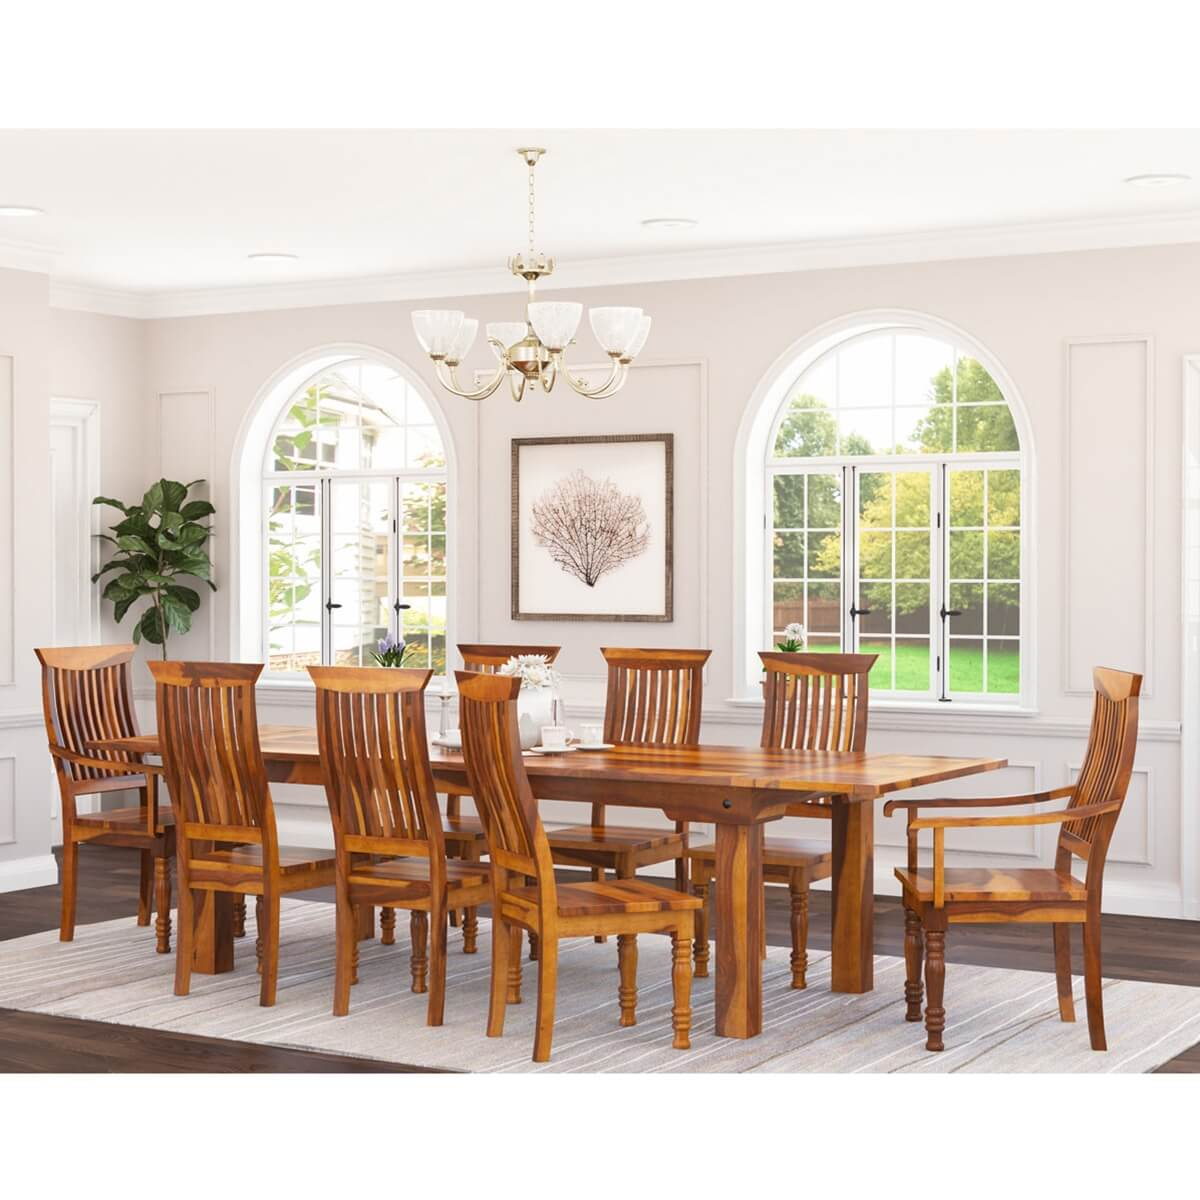 Rustic Mediterranean Eco Dining Table Chair Set W Extensions